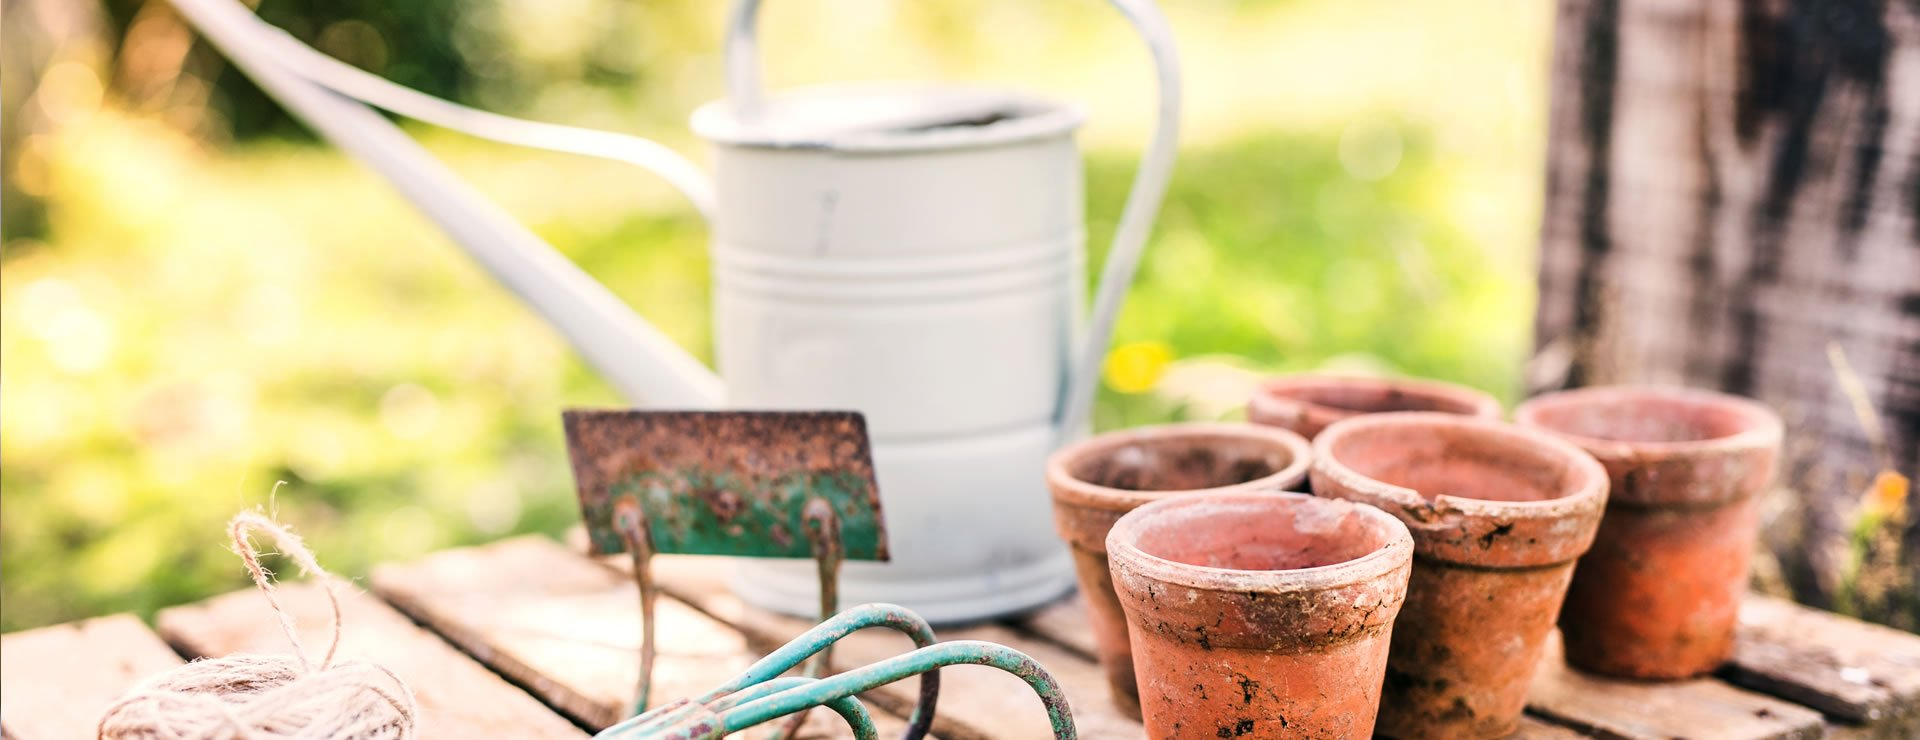 Buying Hedge Plants: Container Grown, Bare Root or Root Balls?